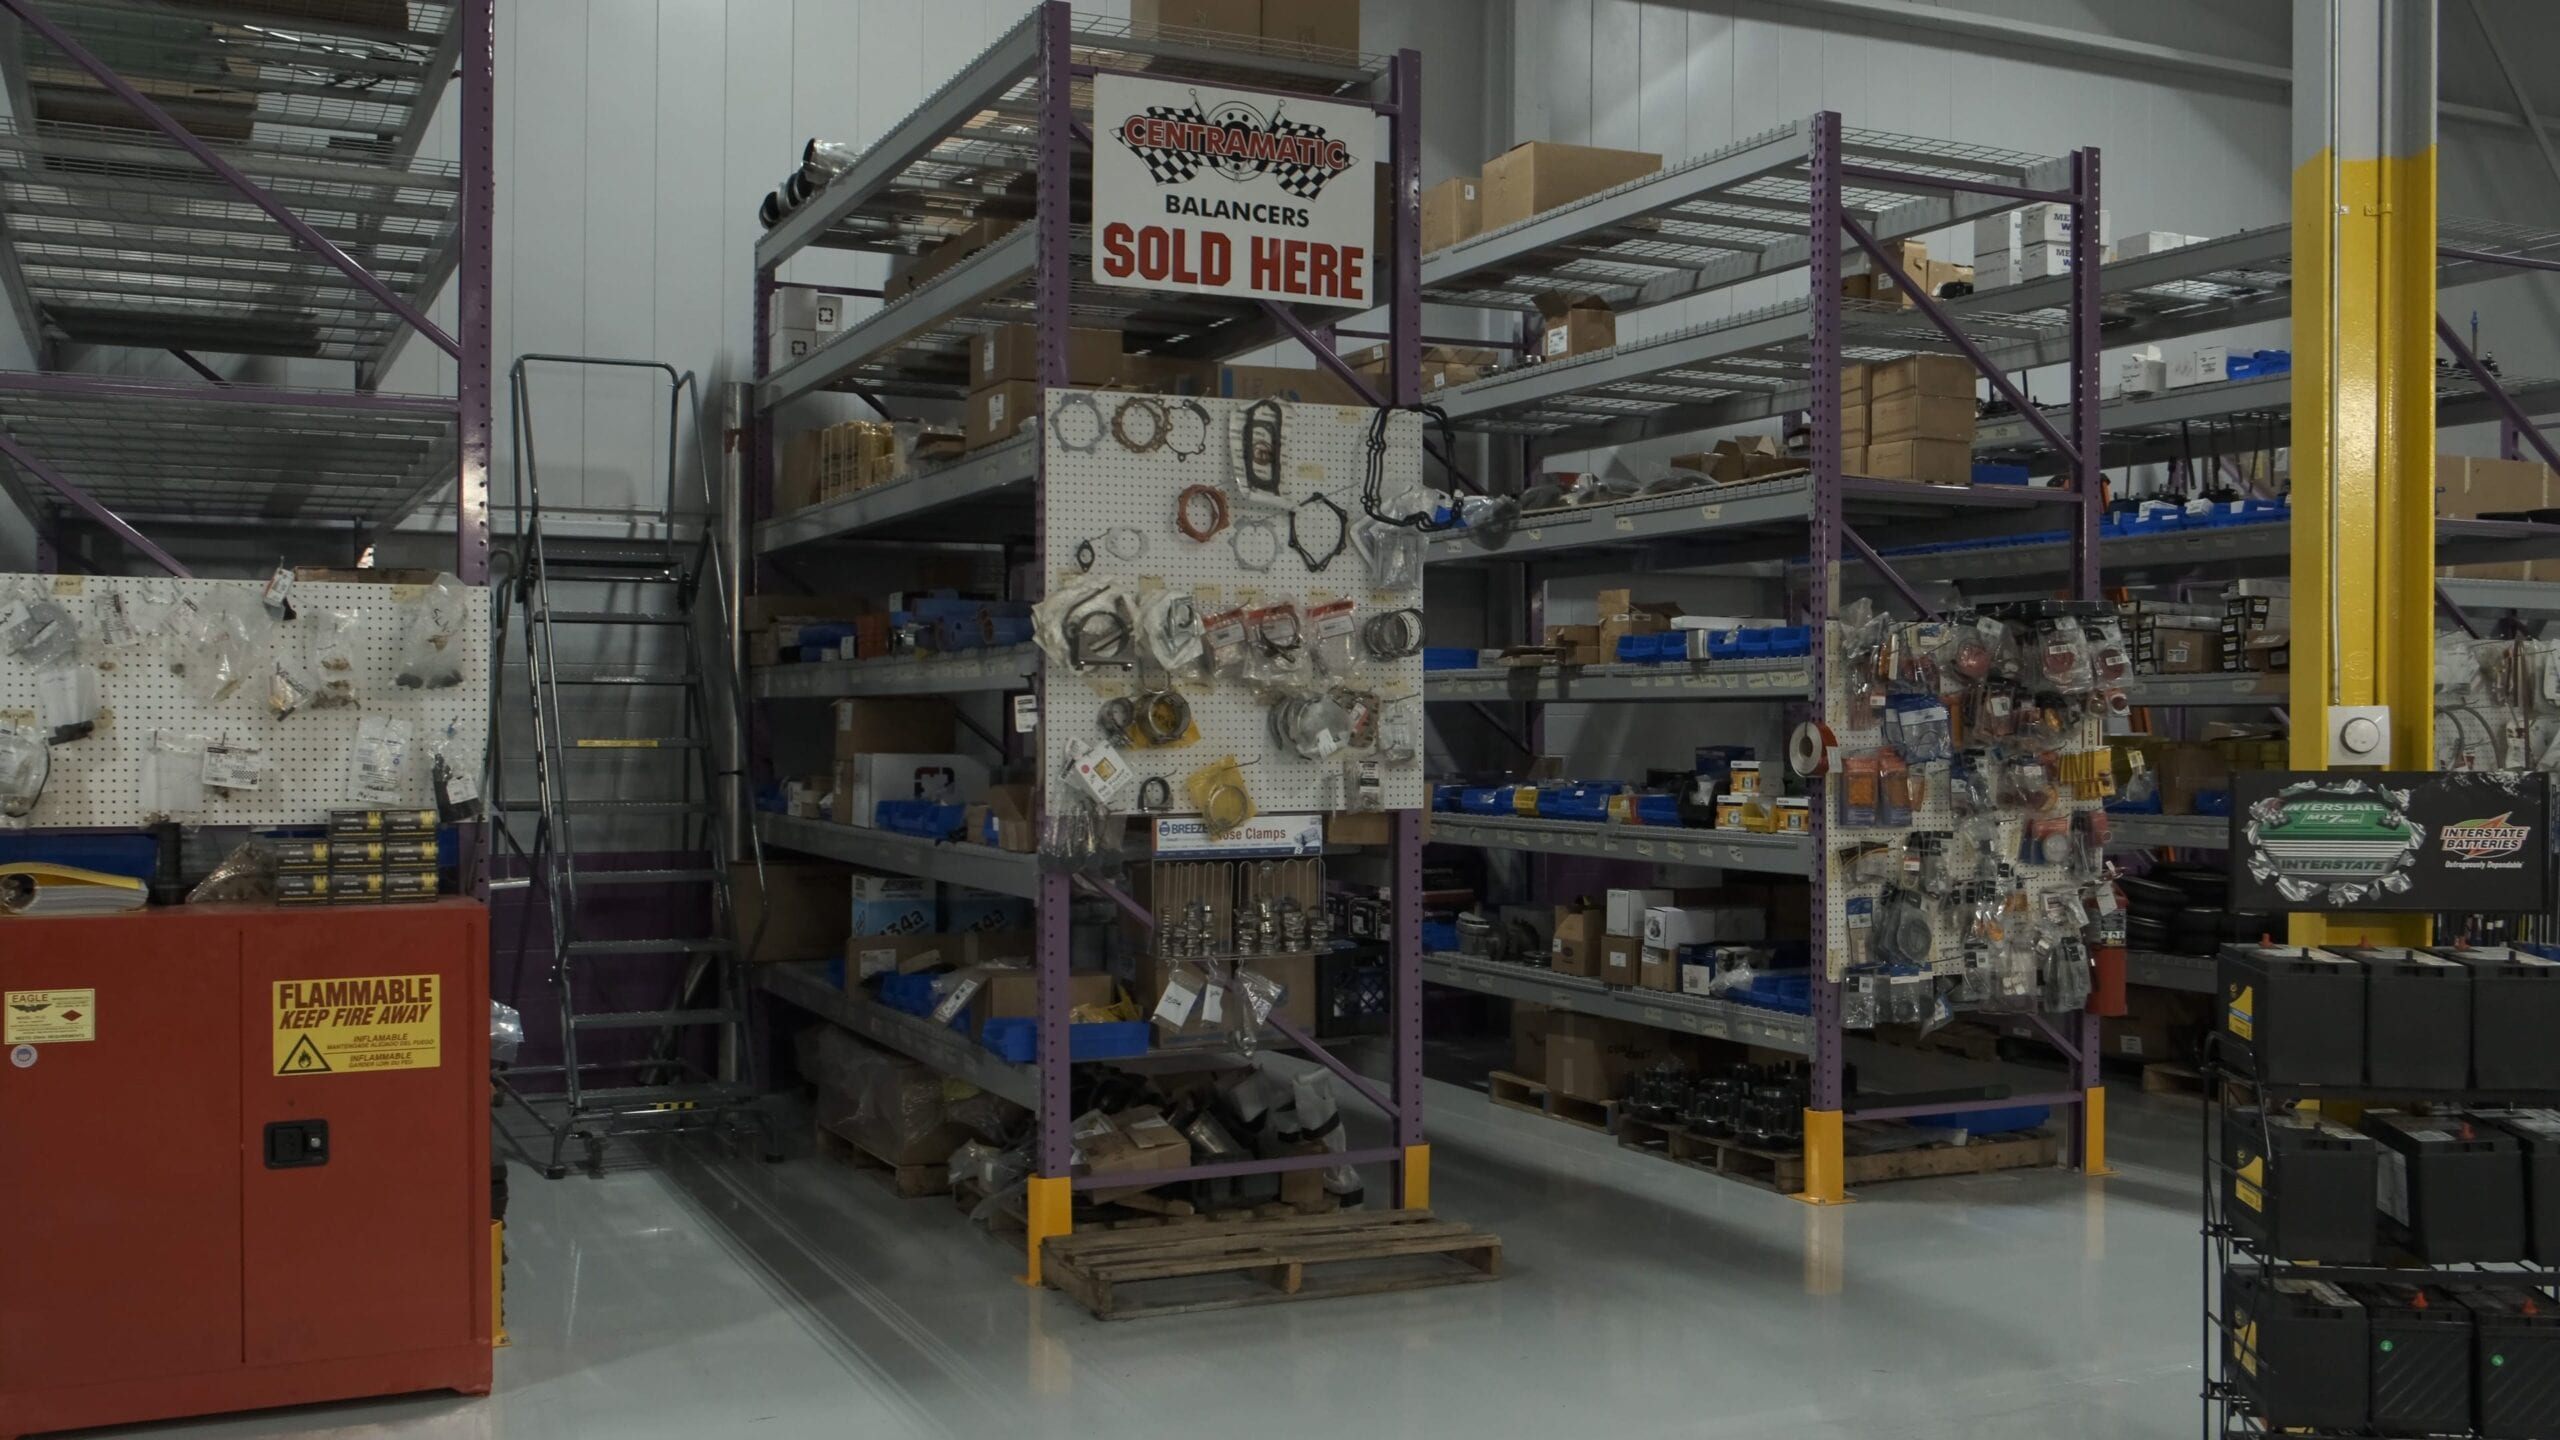 Racks of parts in the parts department of a truck repair shop.